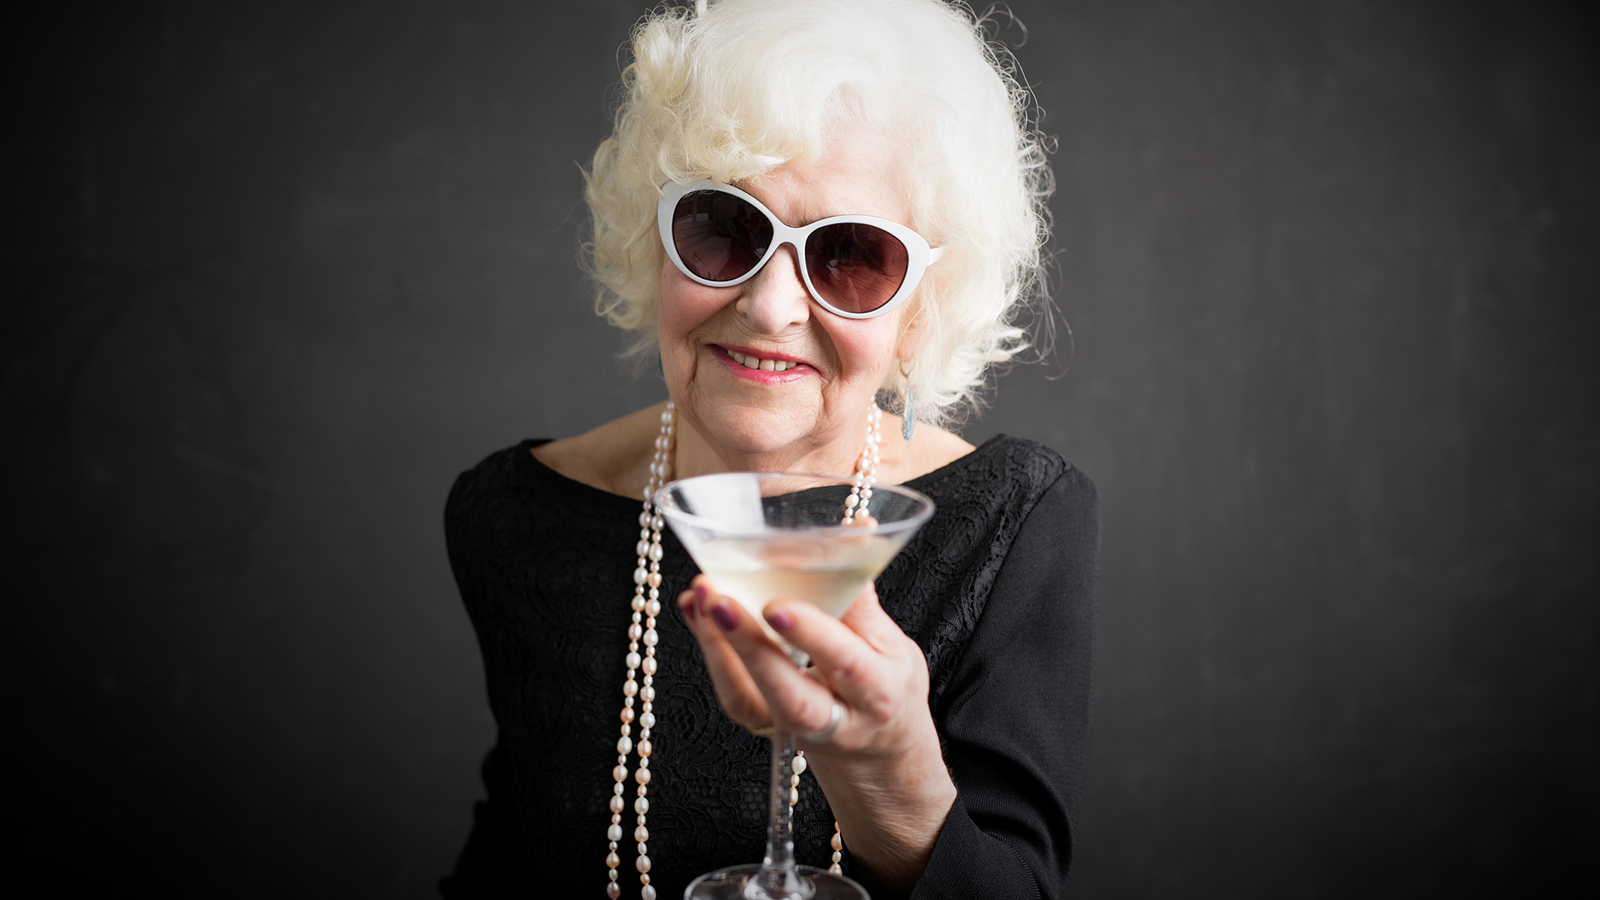 Image: Older lady with cocktail